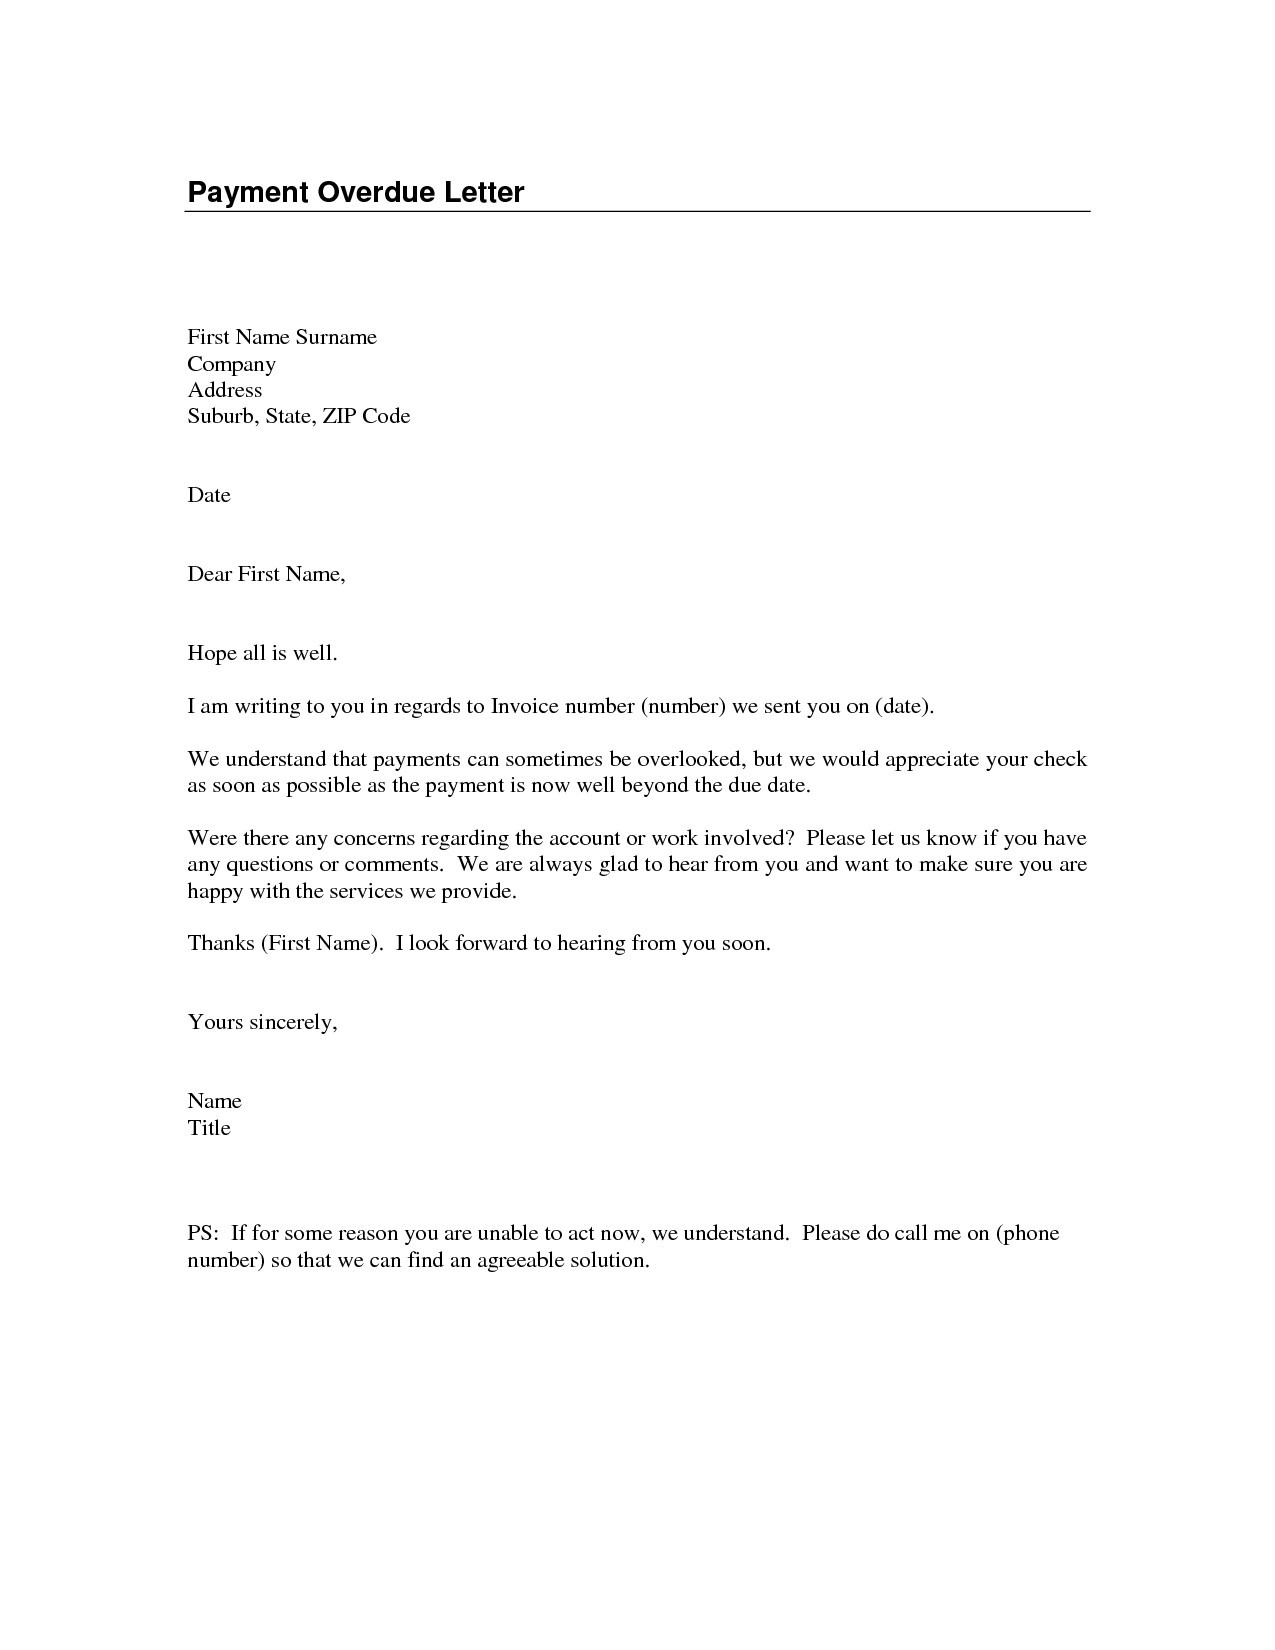 outstanding payment letter template Collection-Legal Letter format Template Best Legal Letter format for Outstanding Payment New 25 Overdue 6-g